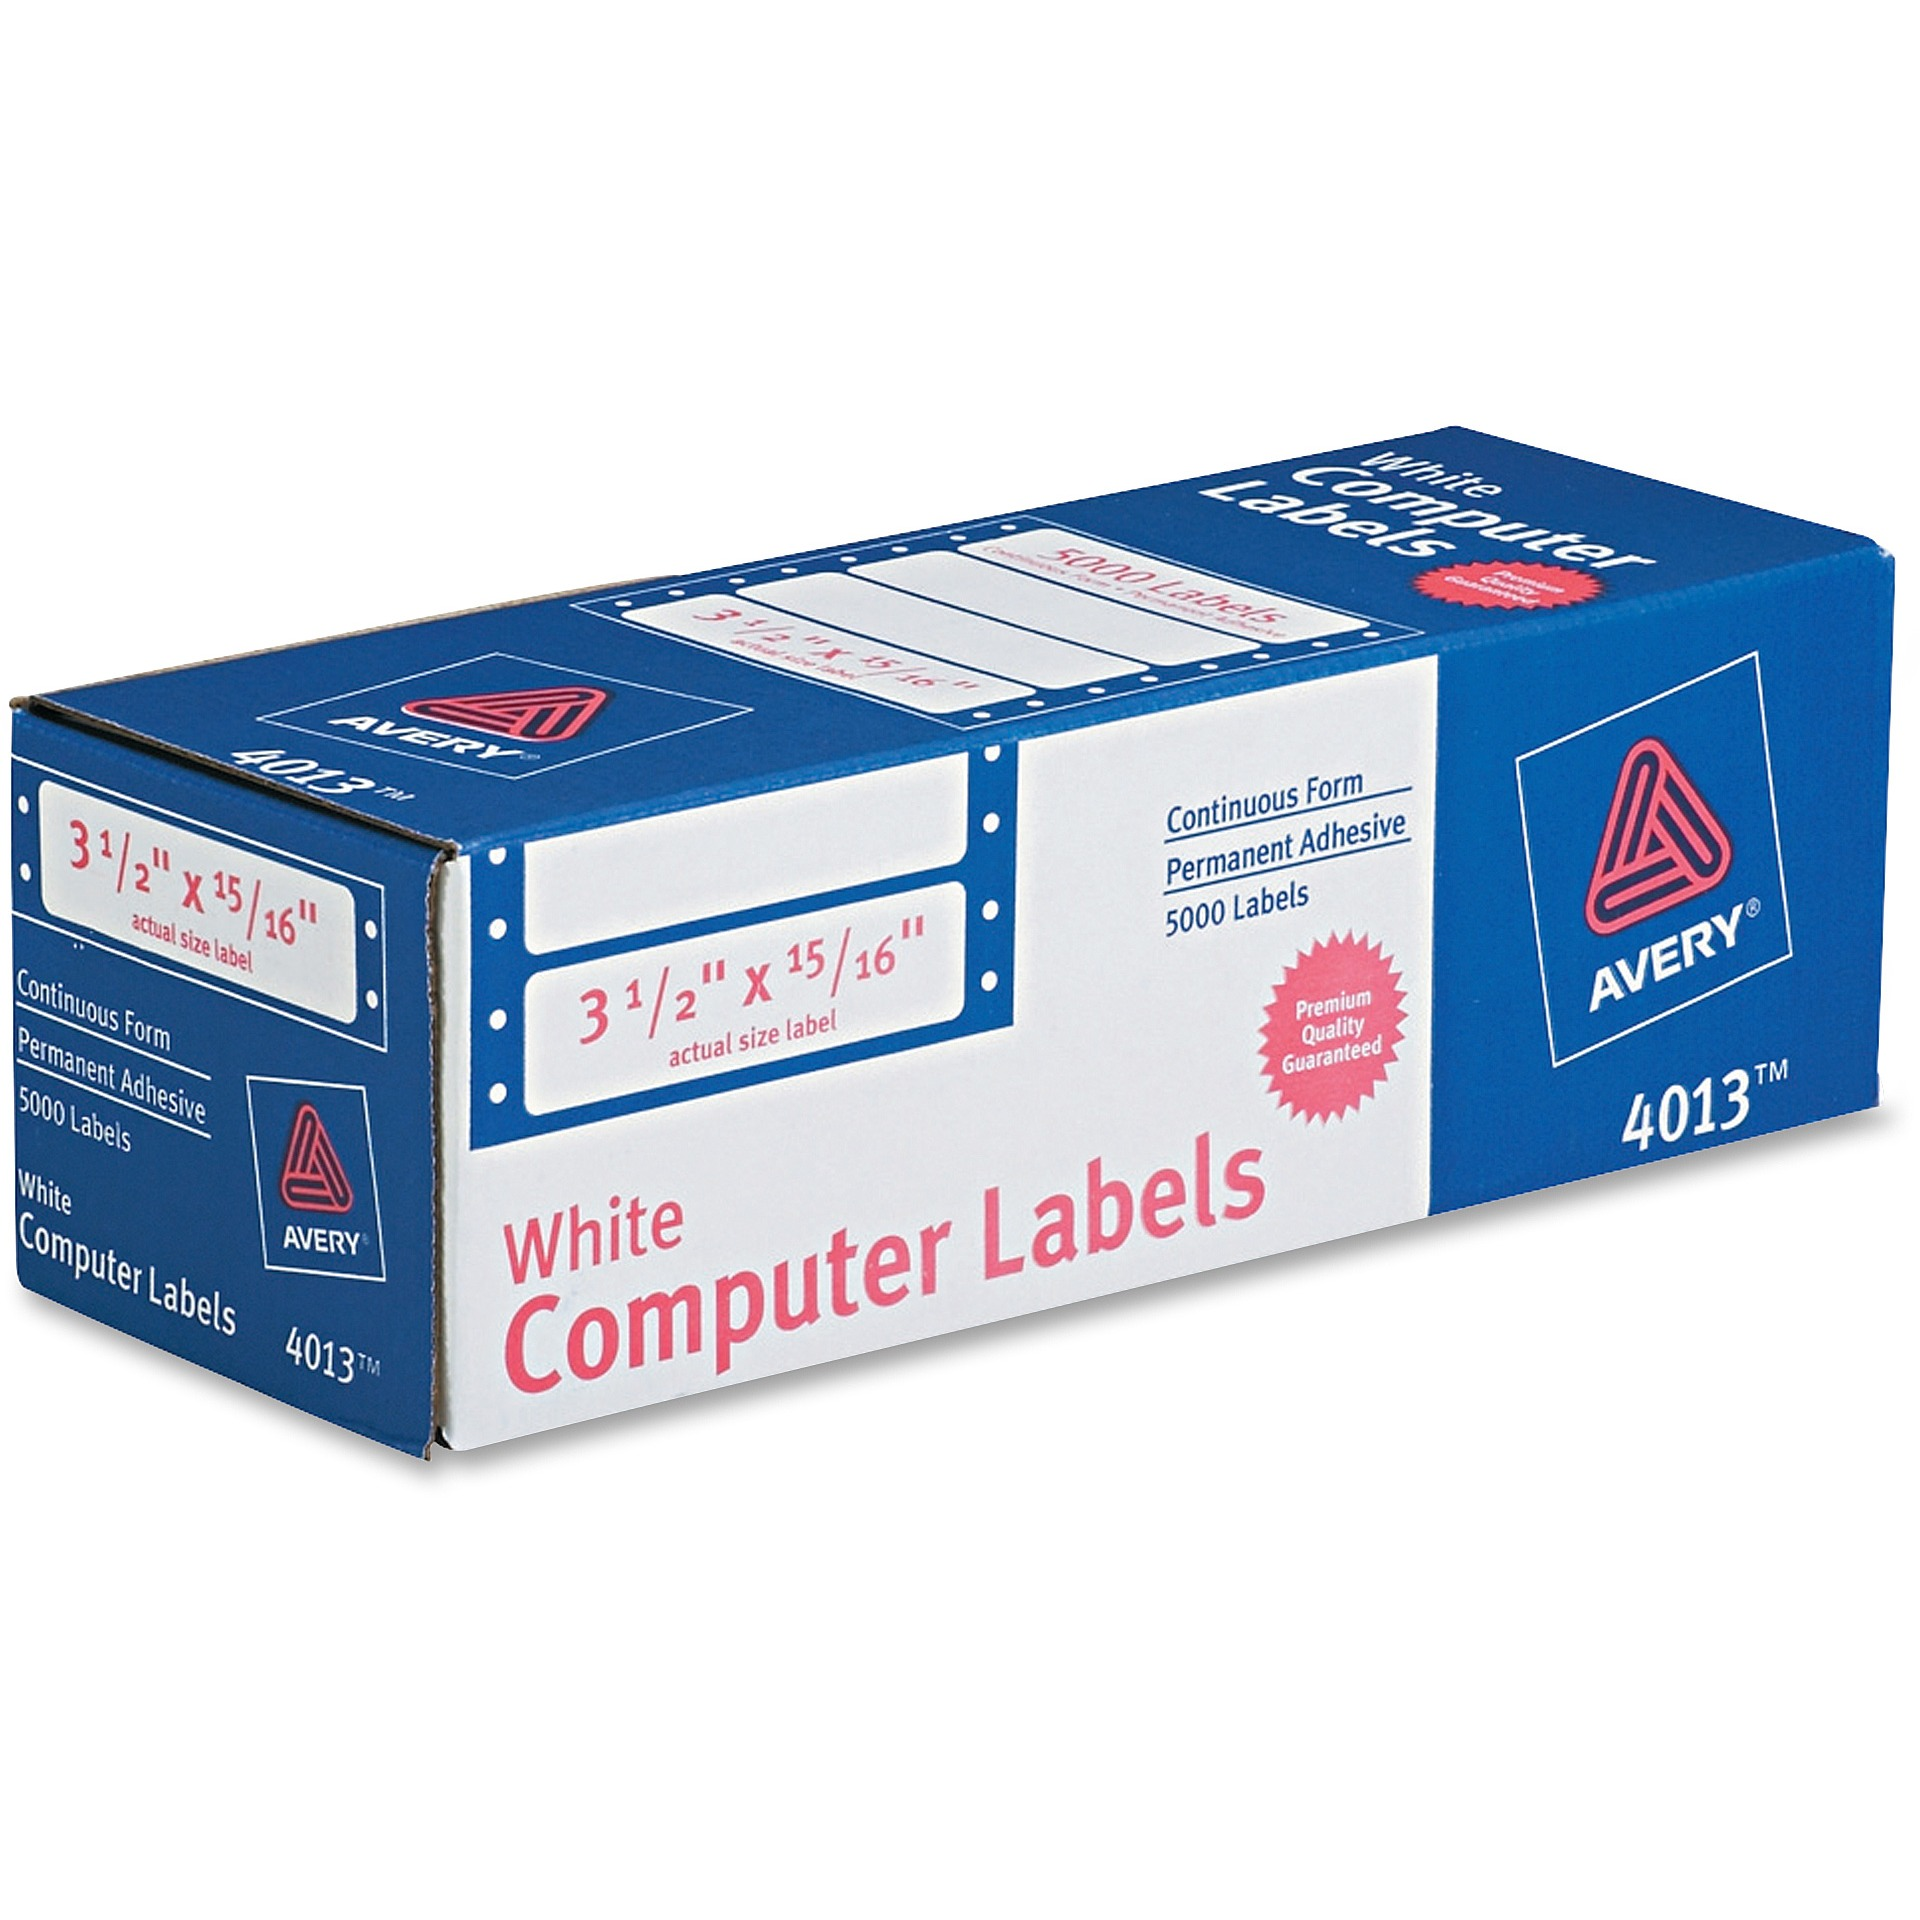 Avery Dot Matrix Mailing Labels, 1 Across, 15 16 x 3 1 2, White, 5000 Box by Avery